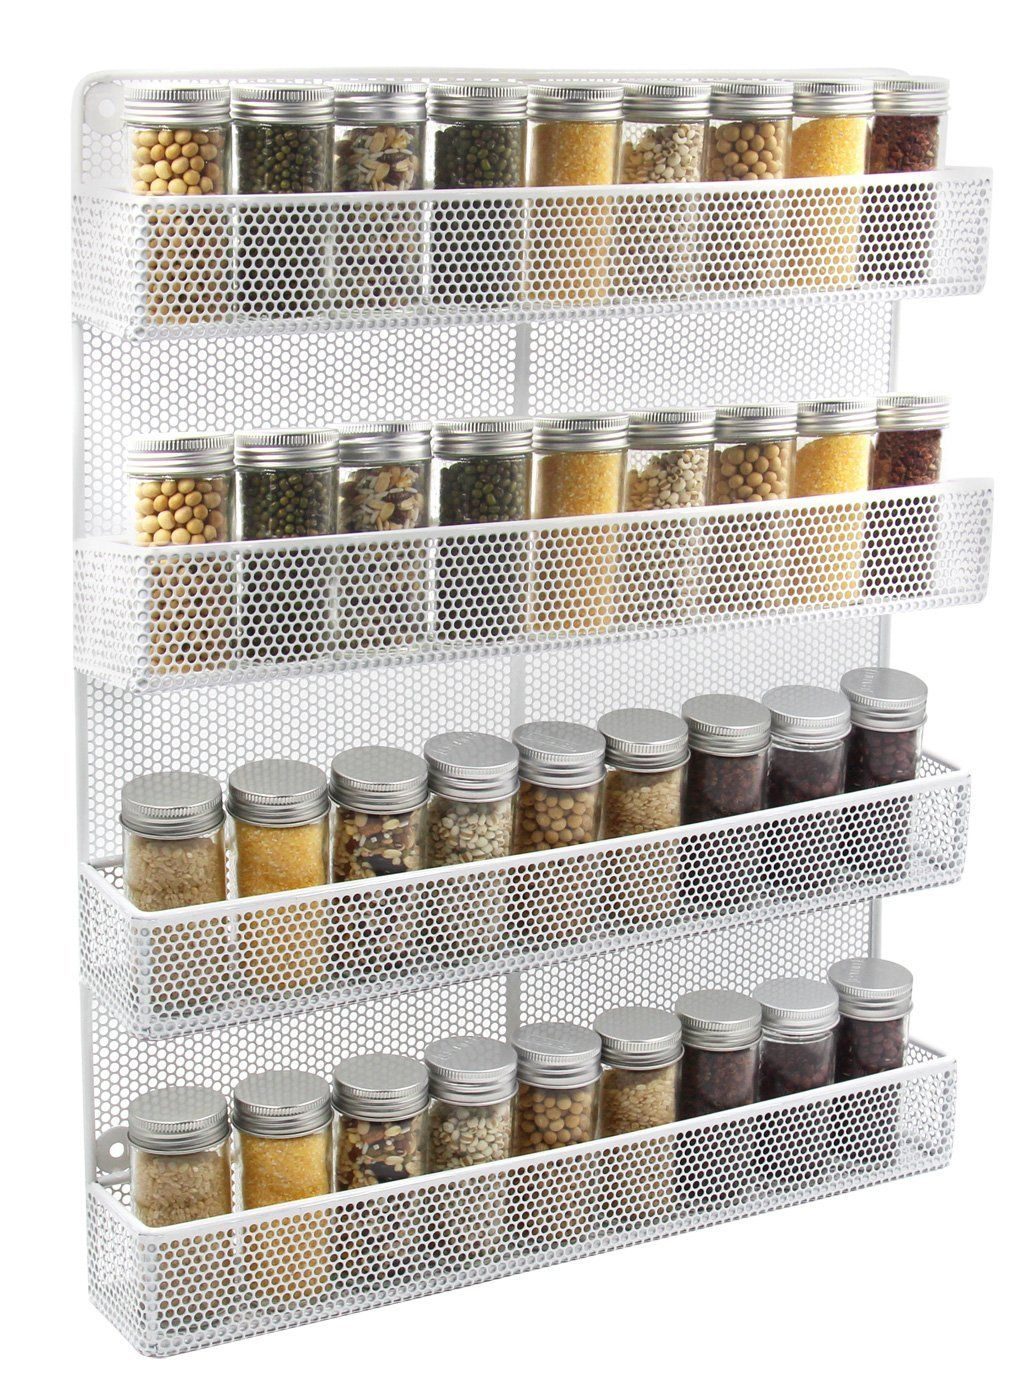 Amazon.com: ESYLIFE 4 Tier Wall Mount Spice Rack Organizer Large ...